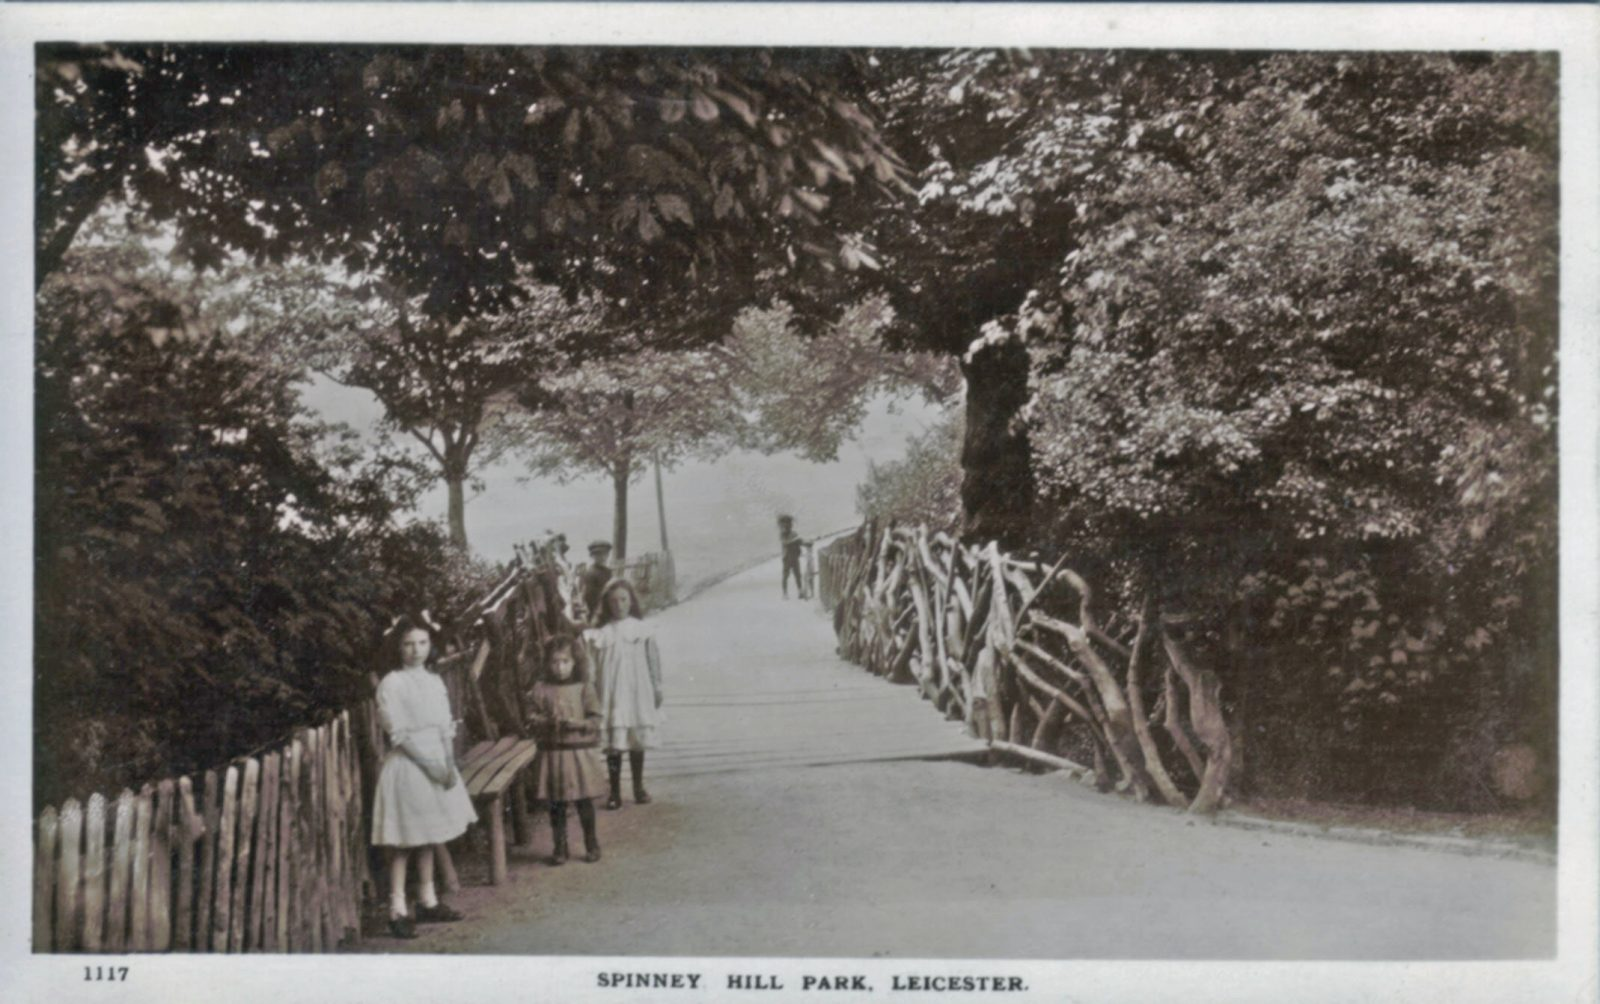 Spinney Hill Park, Leicester. 1901-1920: Path over bridge in the park with several children. (File:1249)